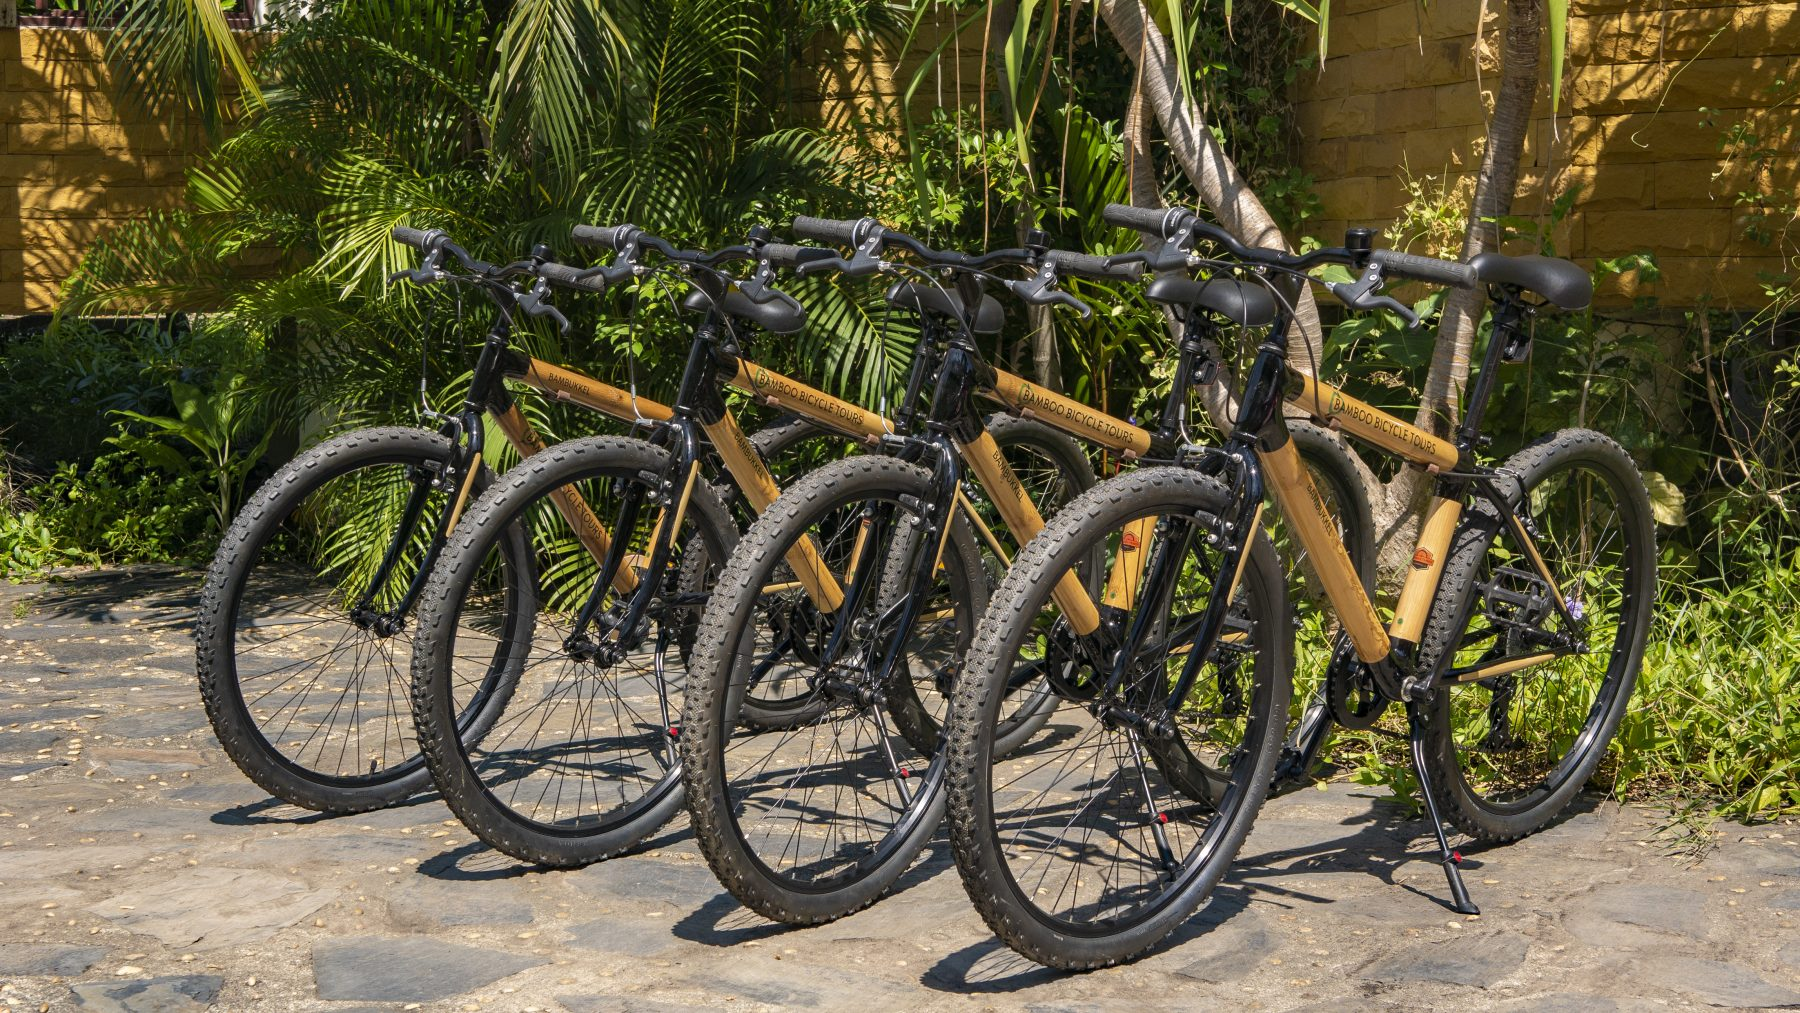 Bamboo bicycle tours